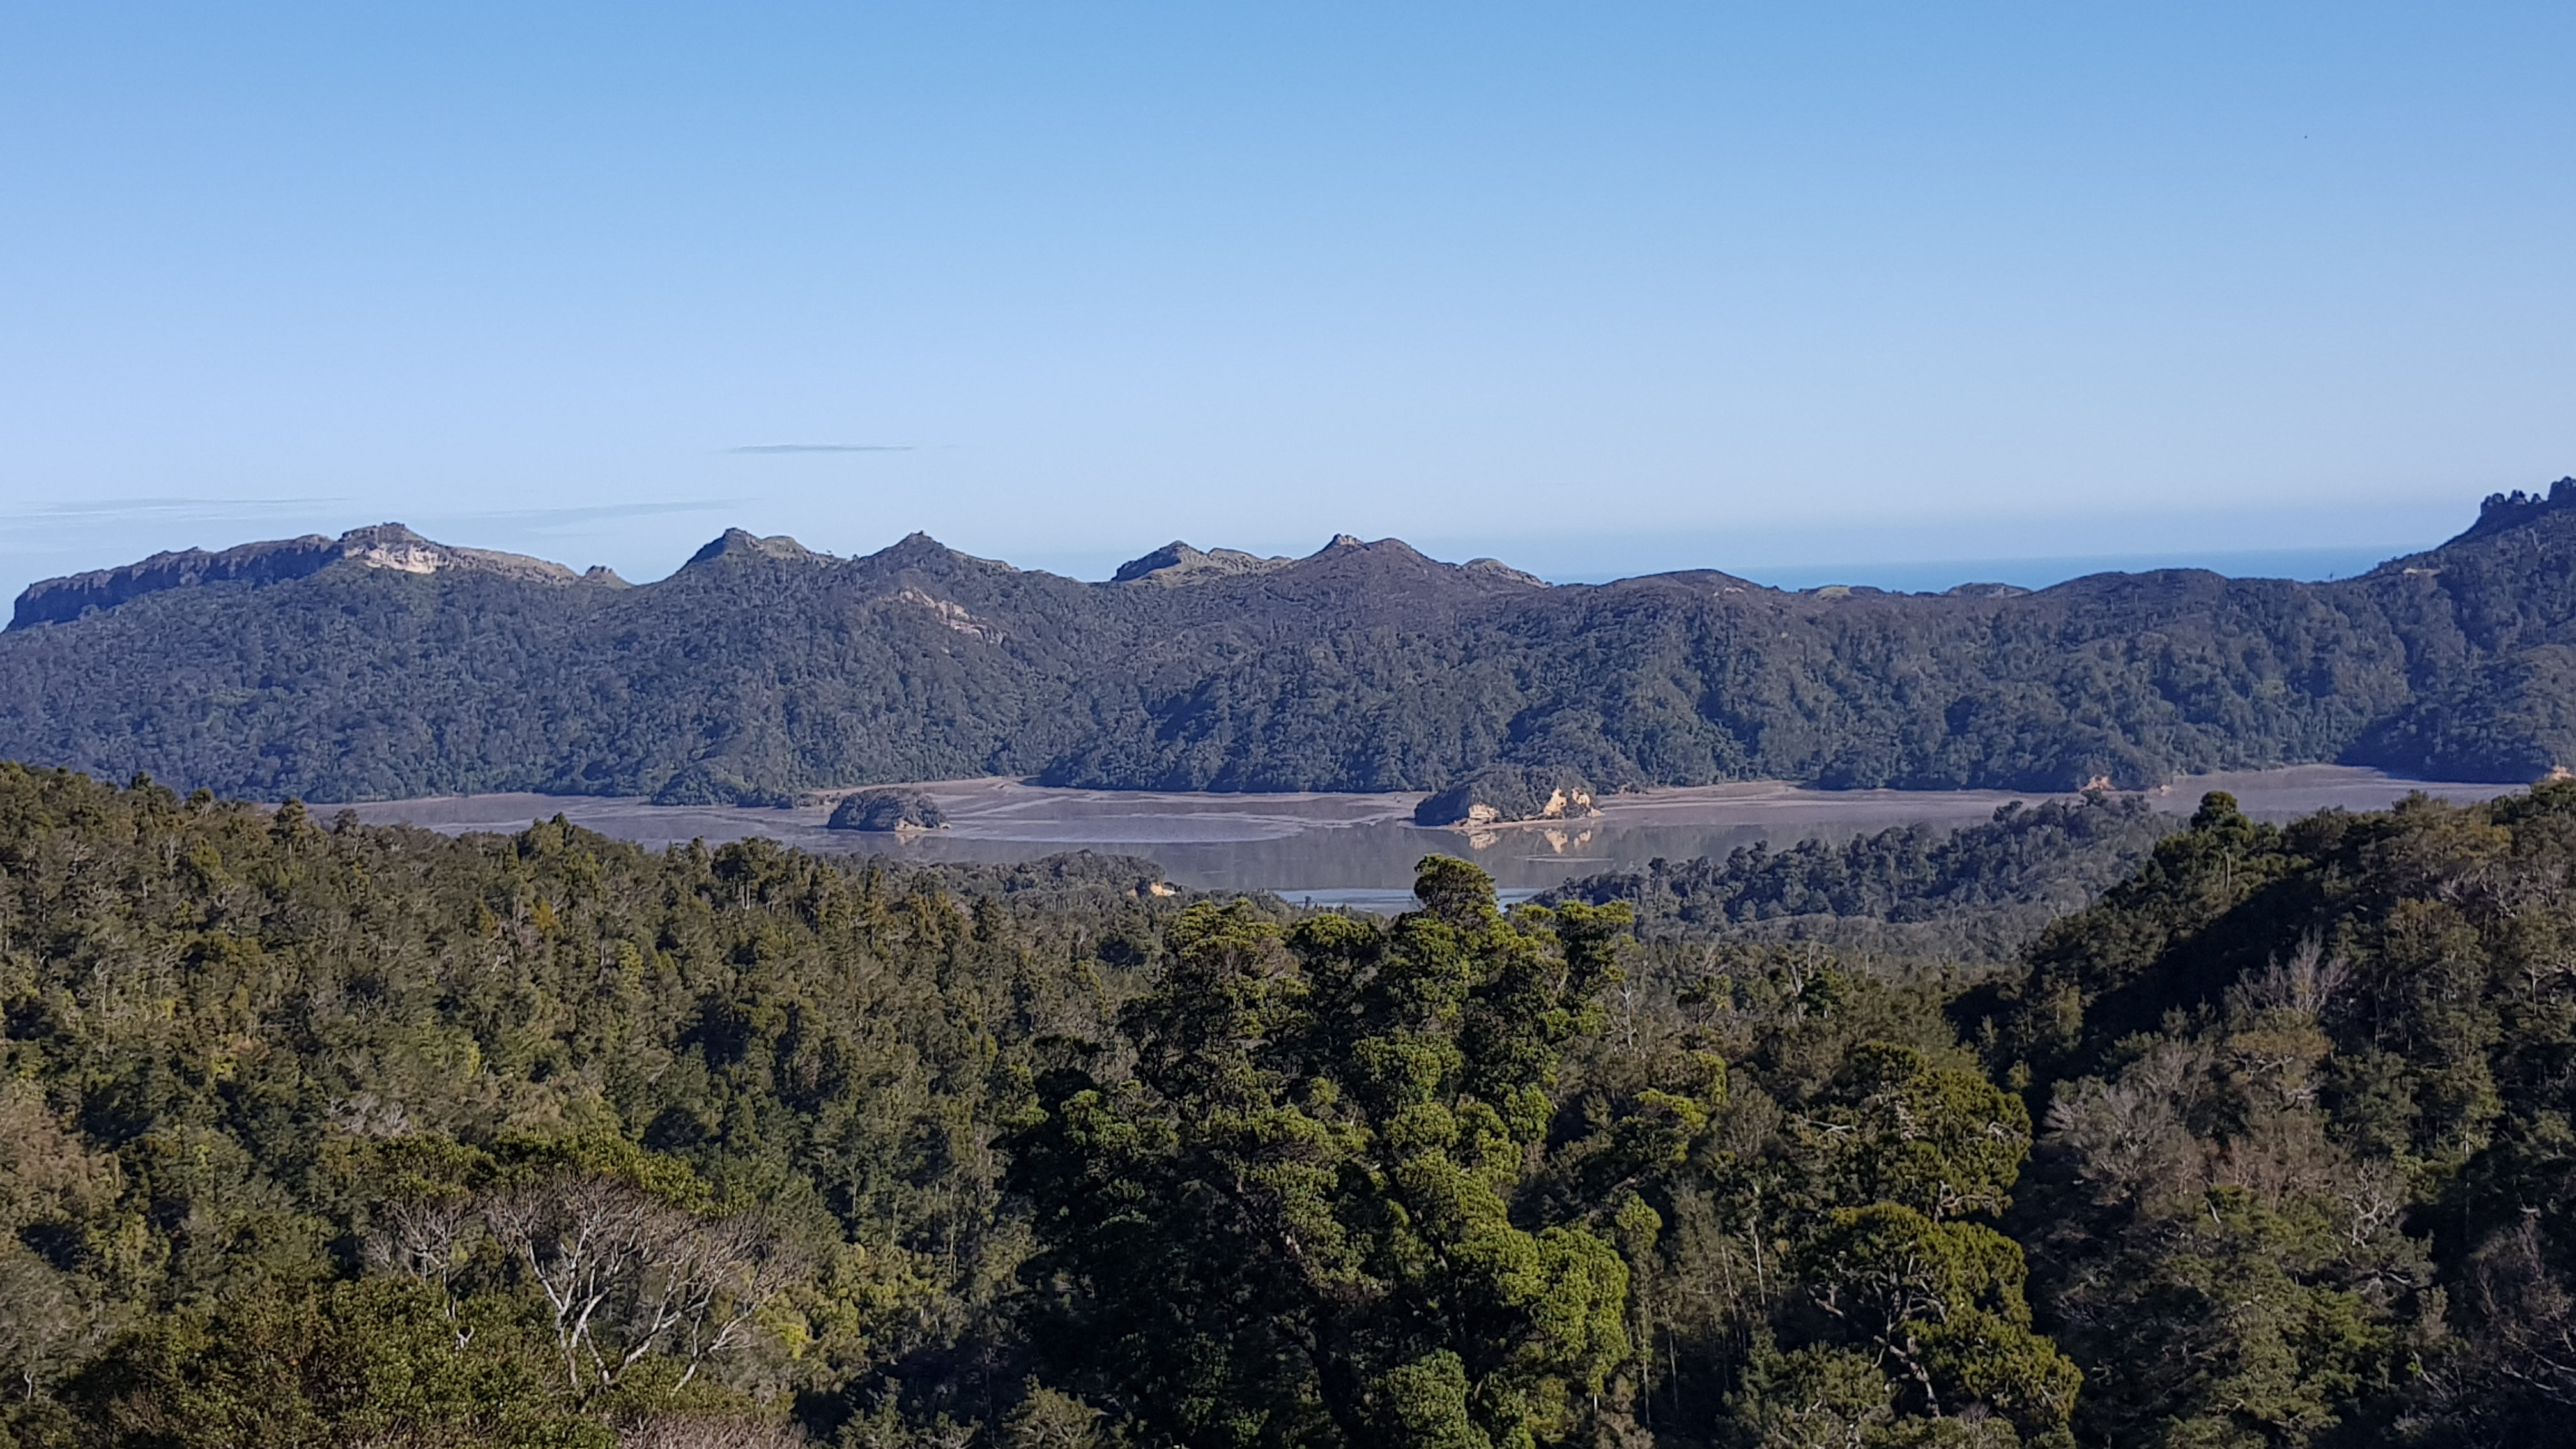 Westhaven - Whanganui Inlet from Knuckle Hill